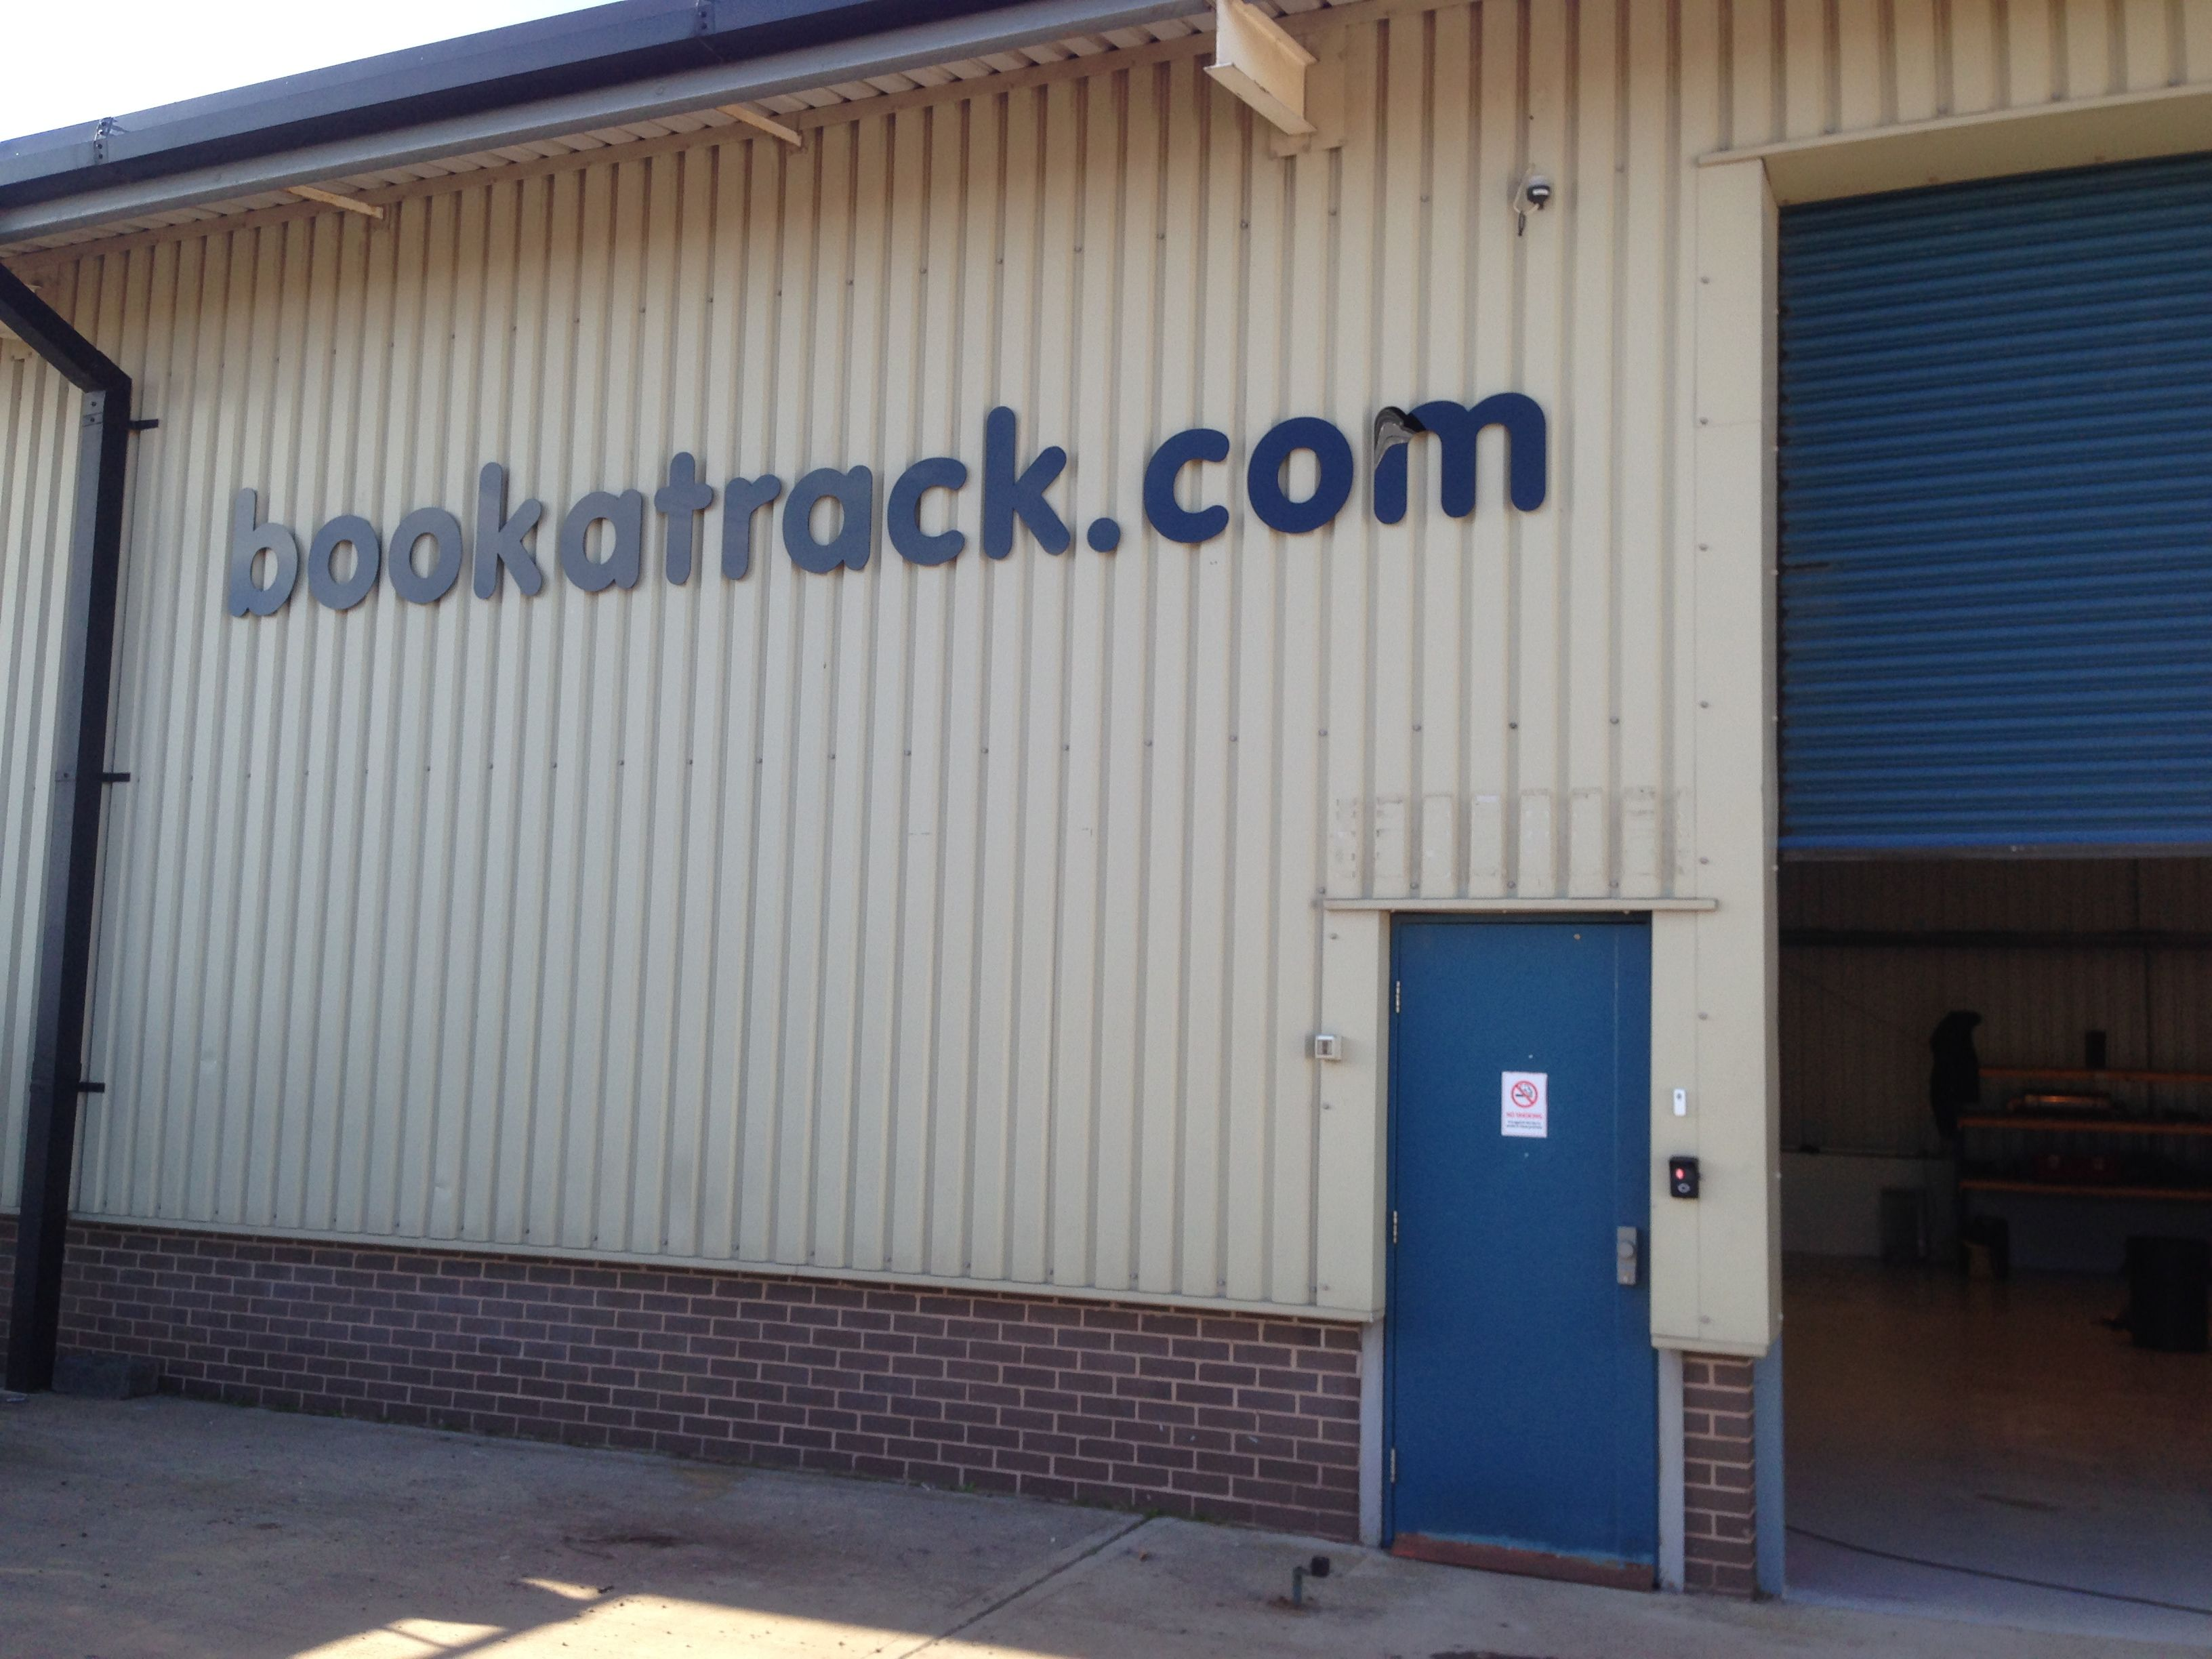 Bookatrack.com